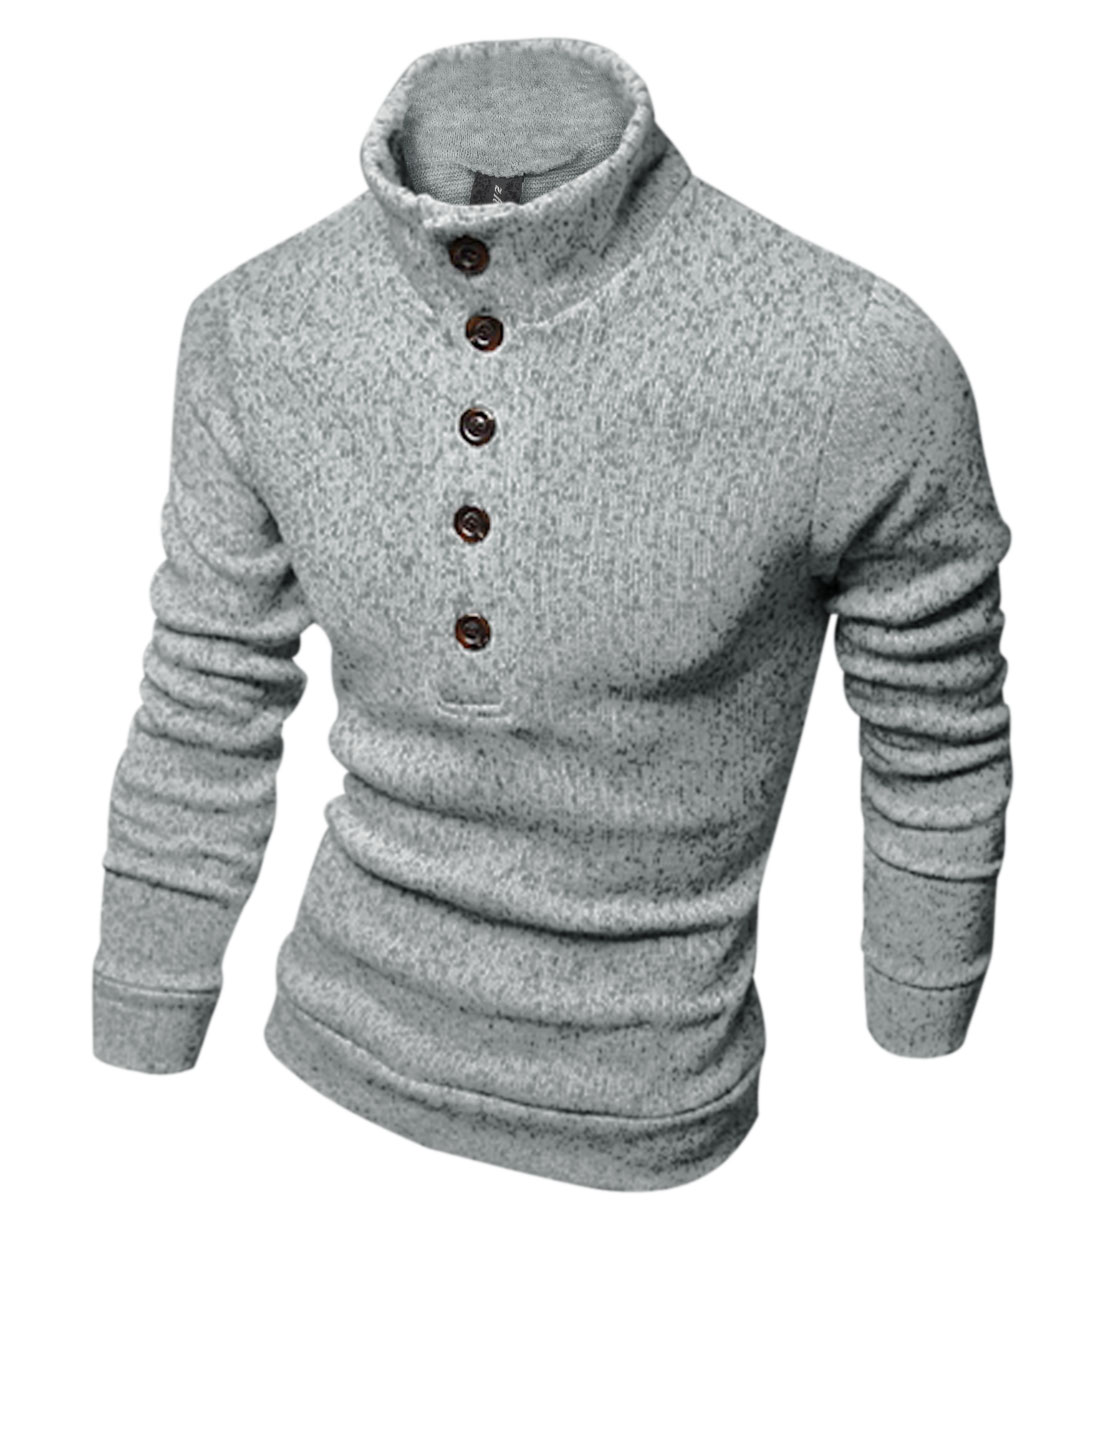 Men Mock Neck Button Closure Front Design Casual Knit Shirt Light Gray M